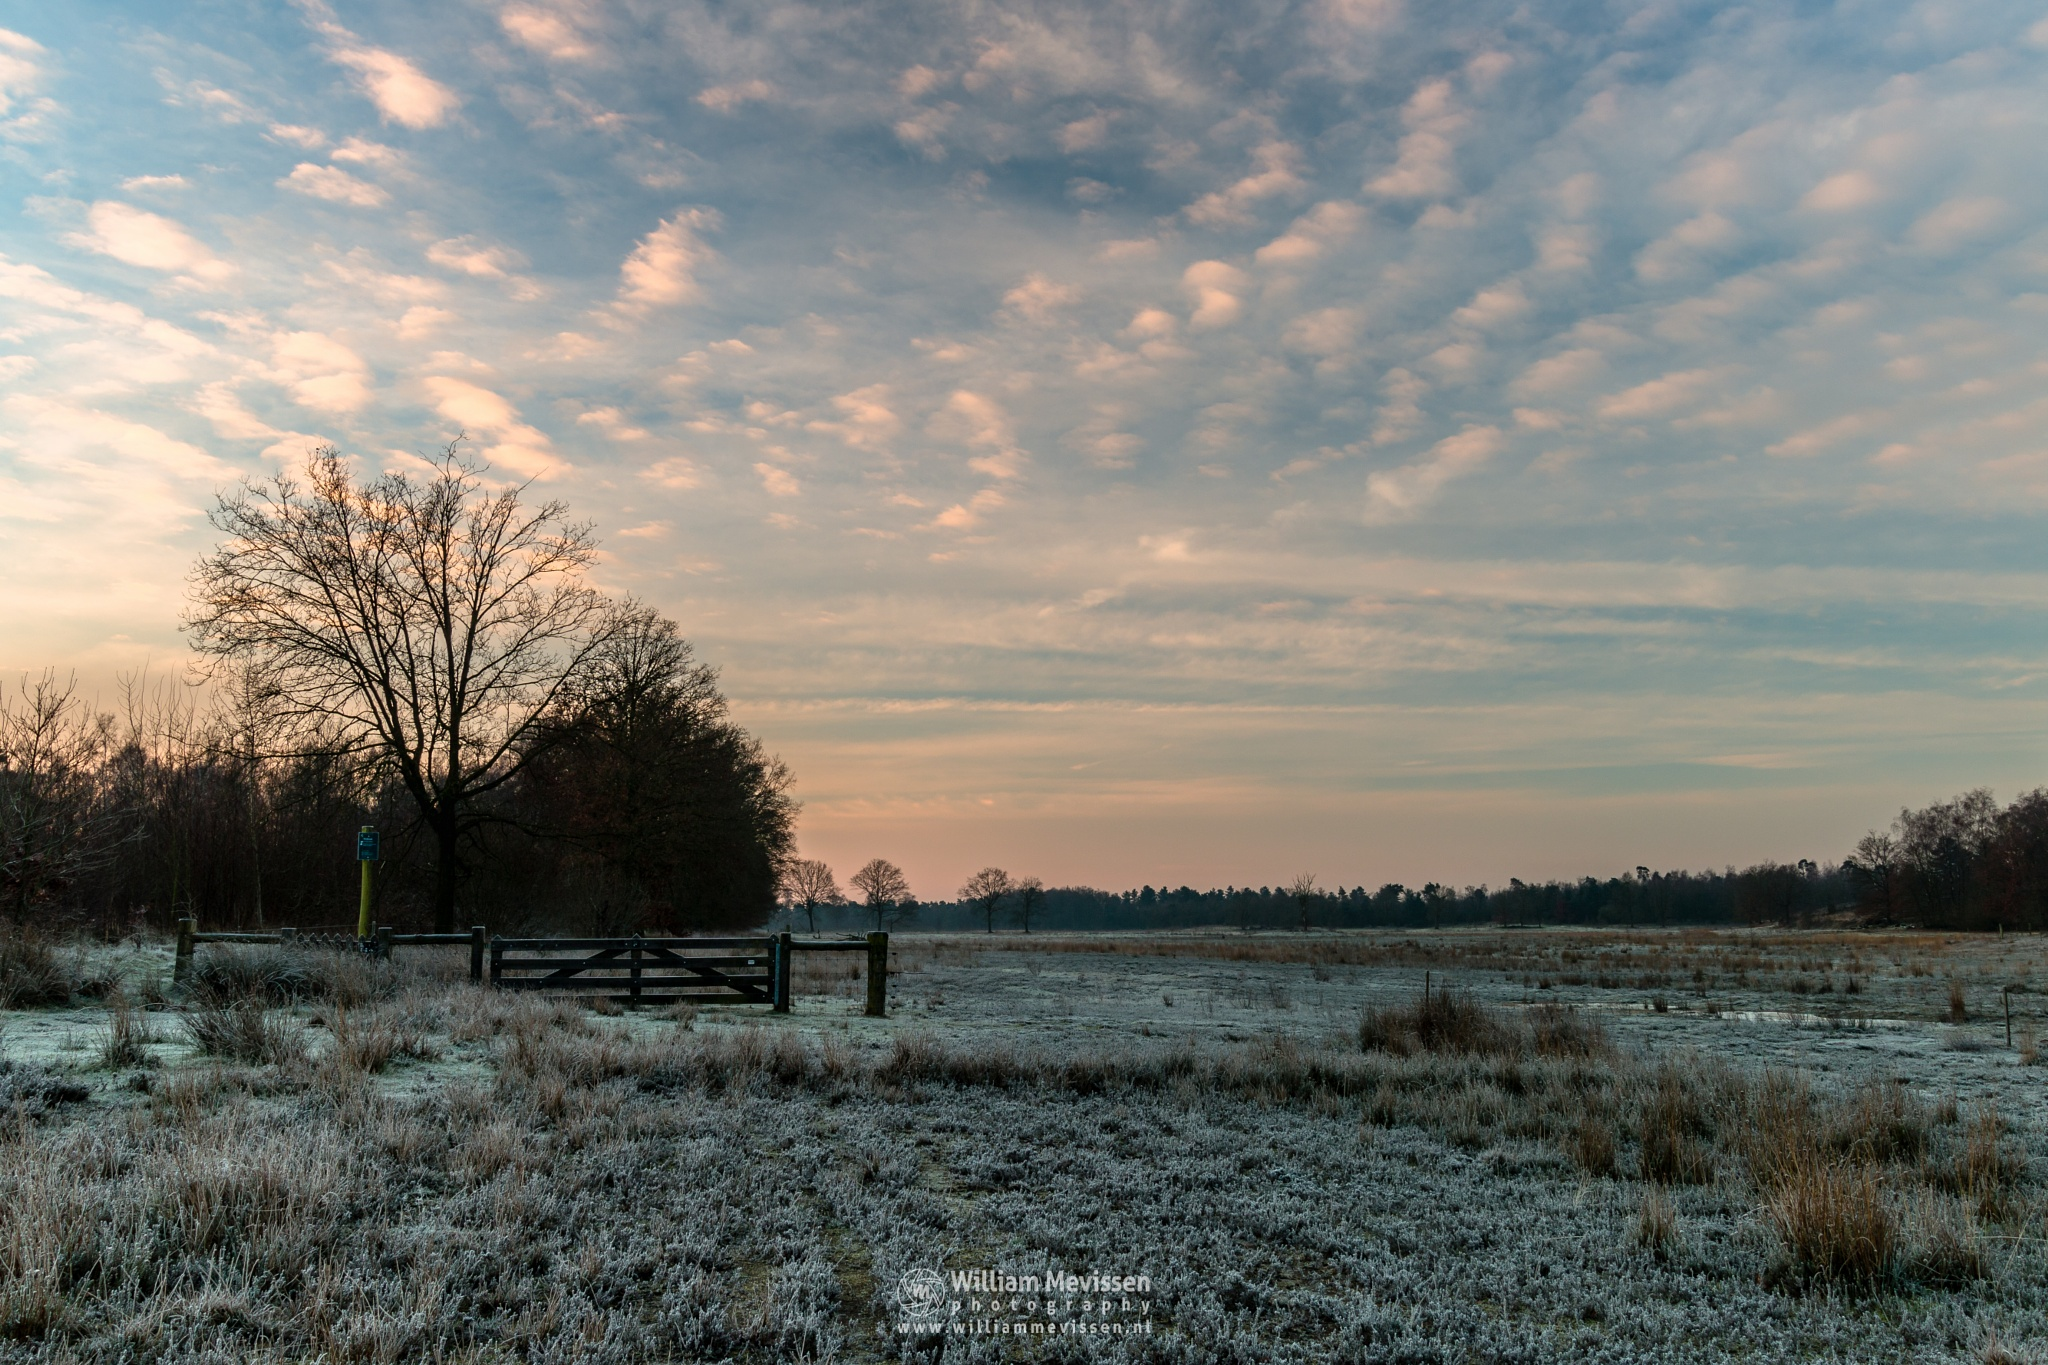 Frosty Land by William Mevissen